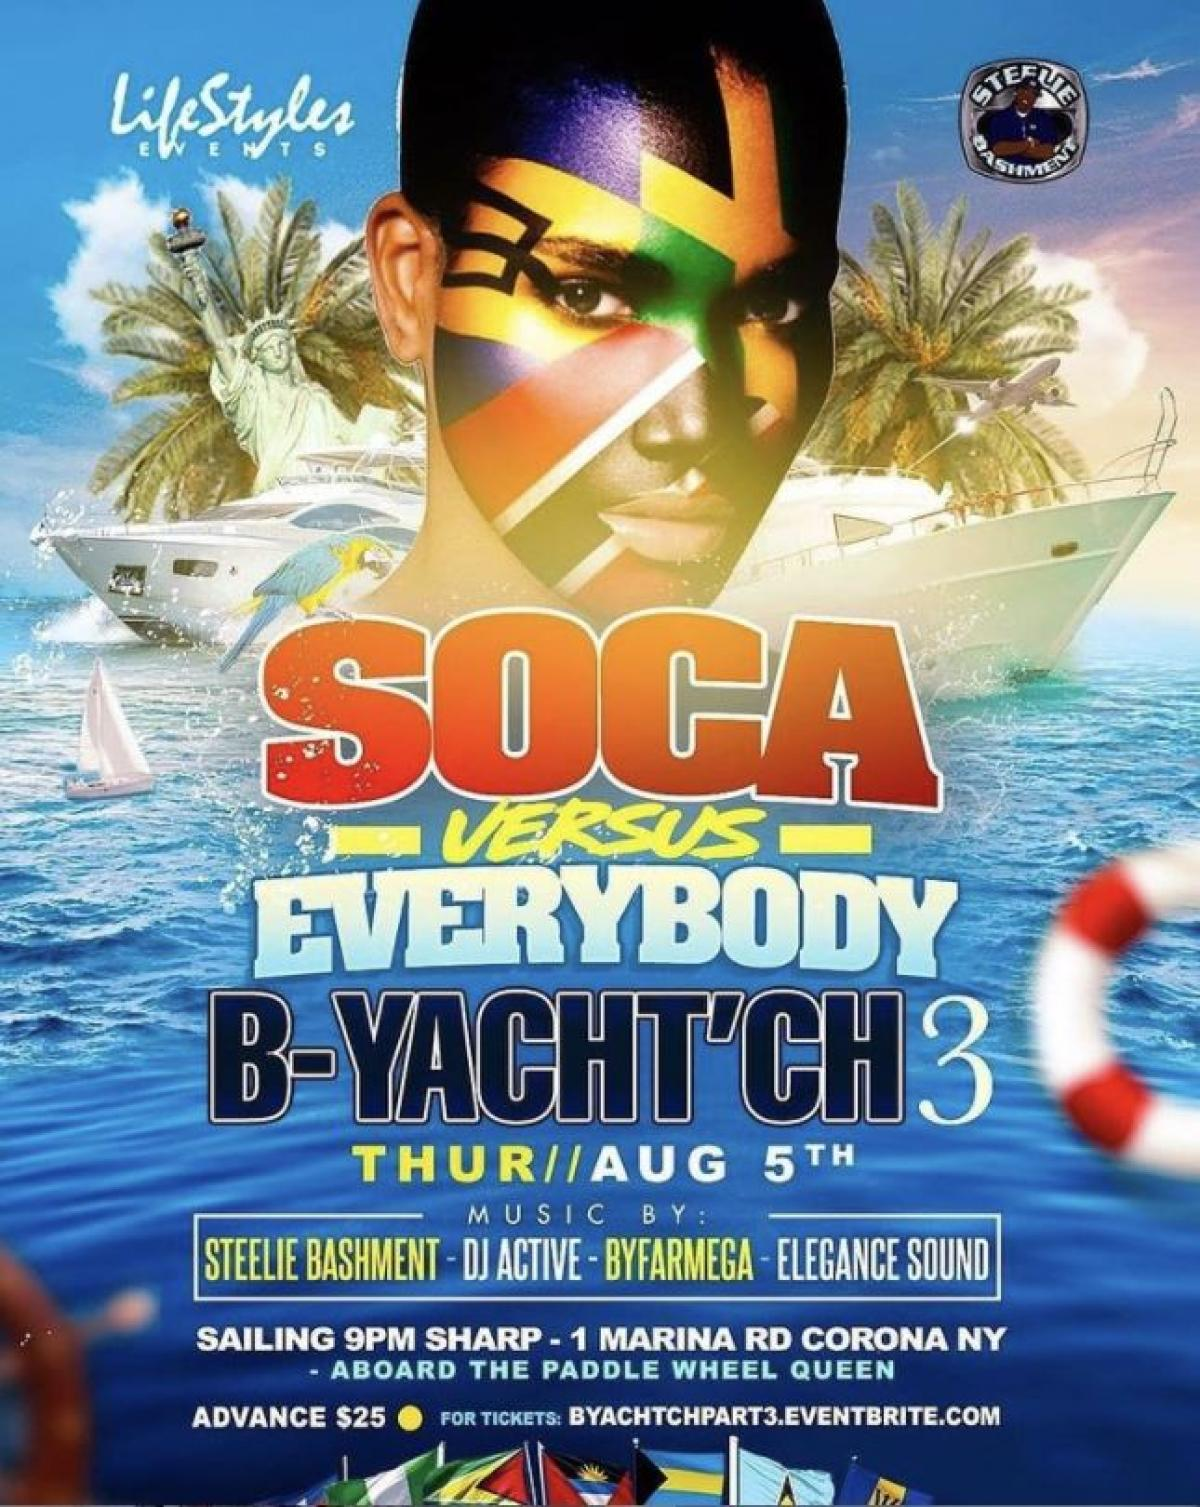 B-Yacht'ch 3 flyer or graphic.